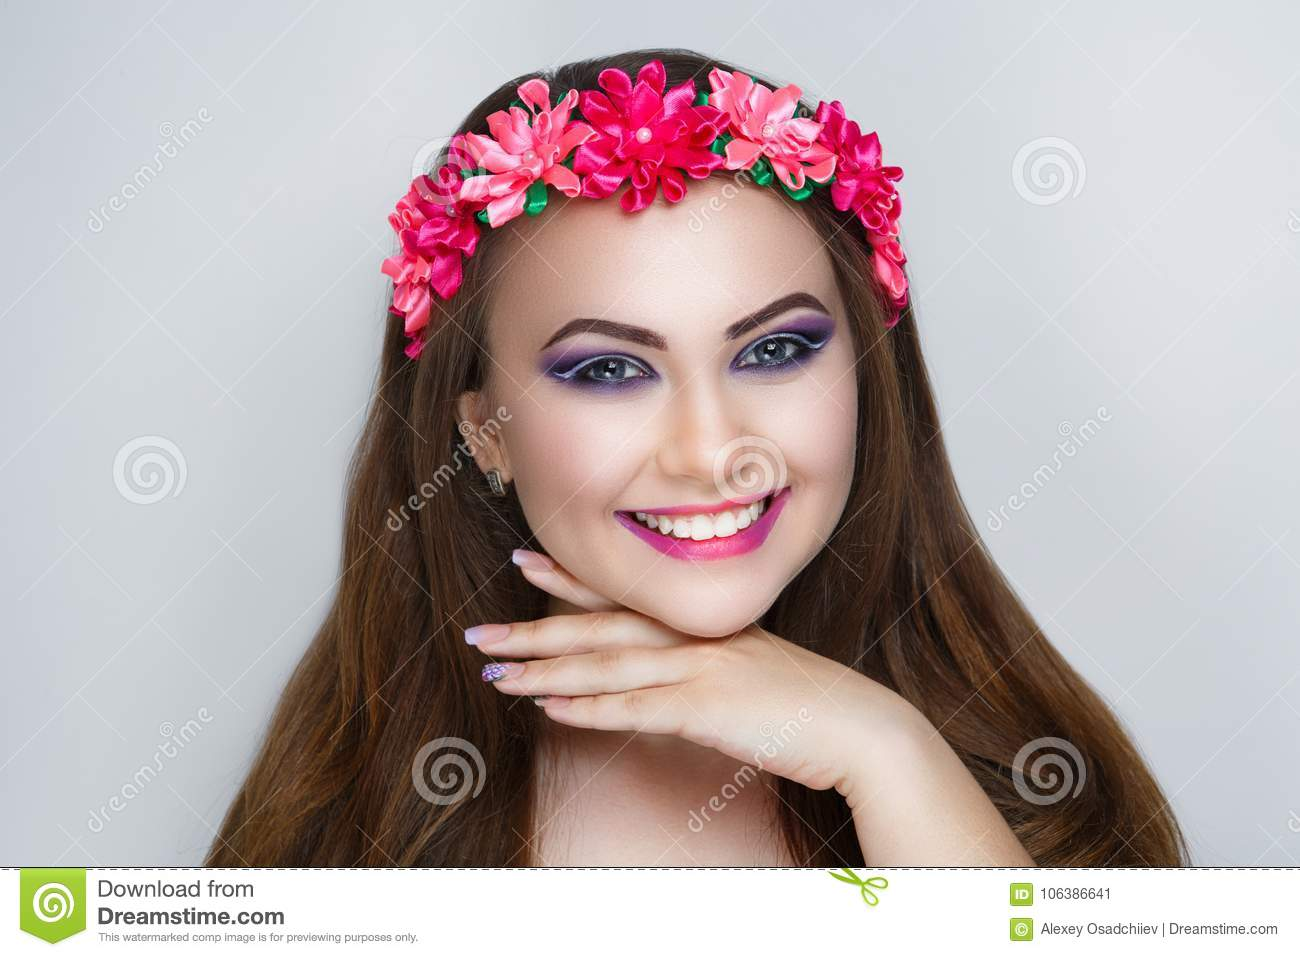 Woman Flower Wreath Stock Image Image Of Makeup Crown 106386641